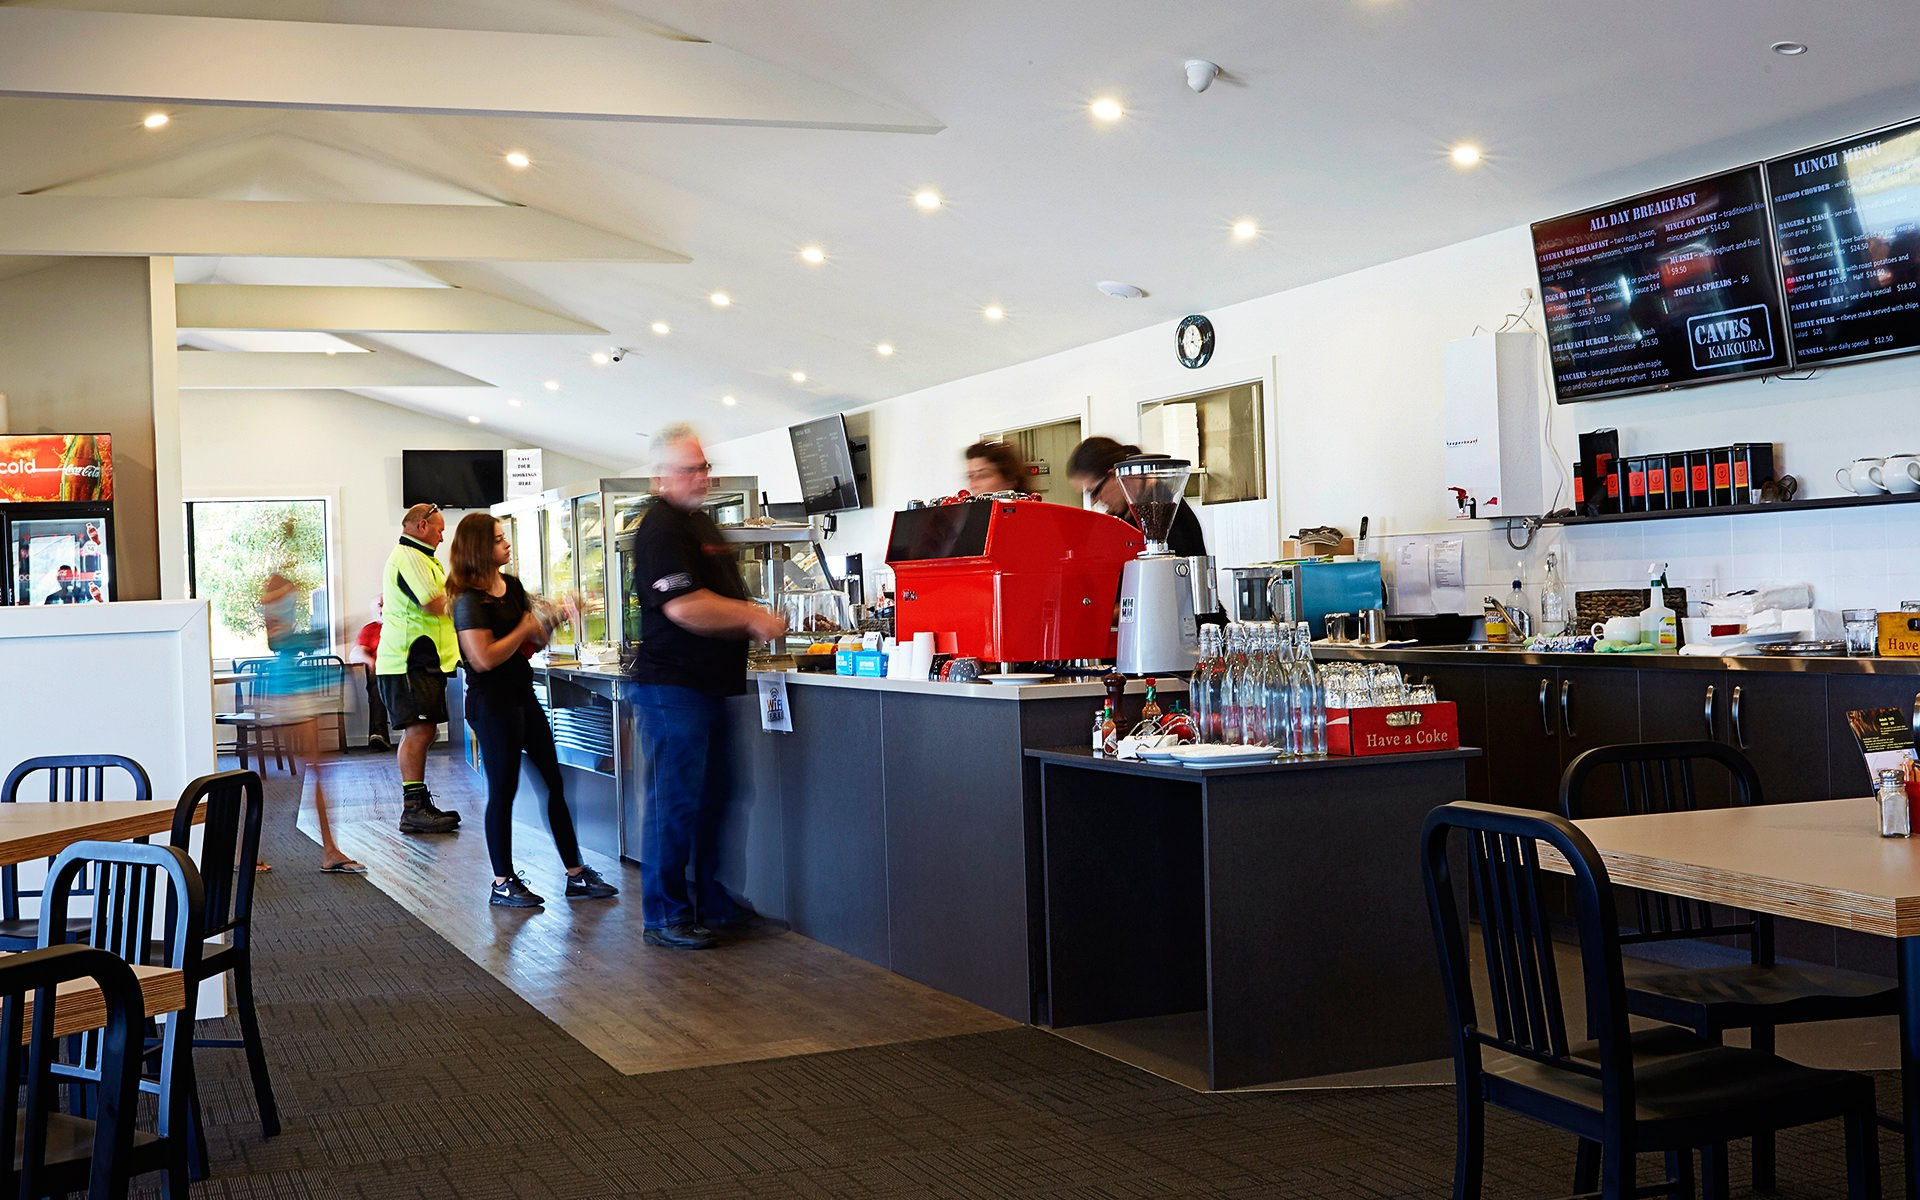 caves-kaikoura-cafe-01